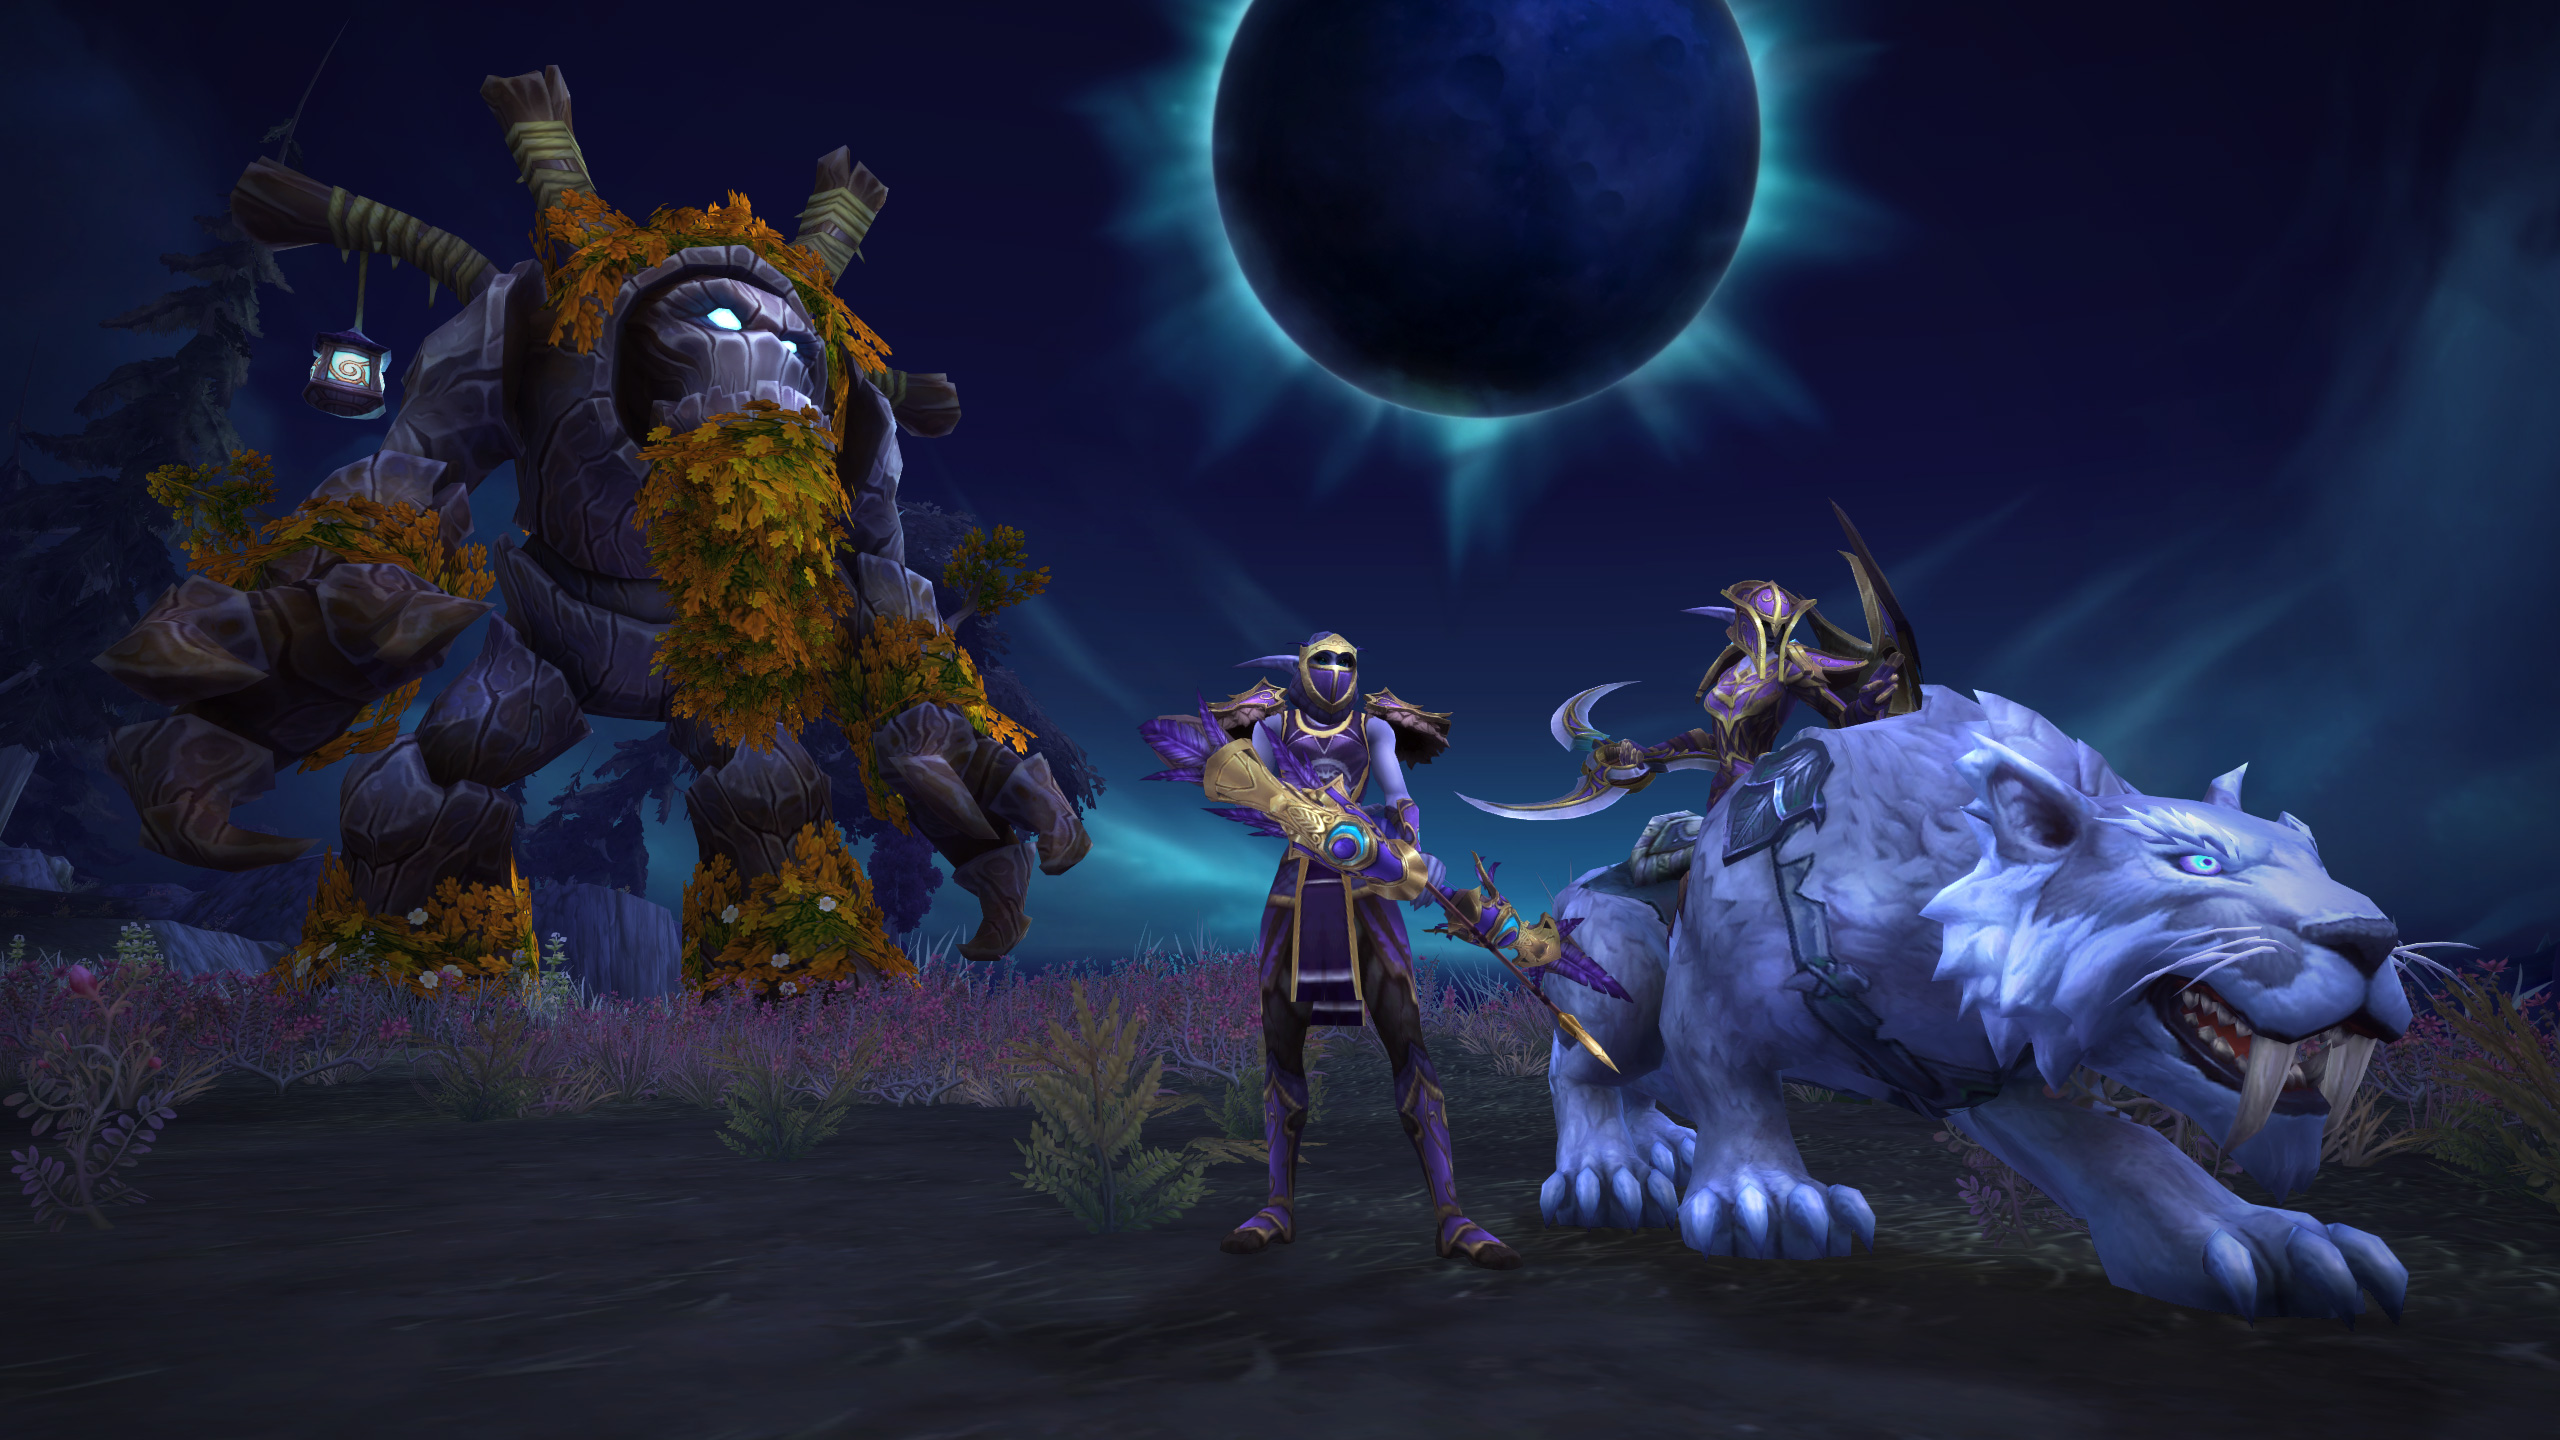 Night Elves get the spotlight in World of Warcraft, with